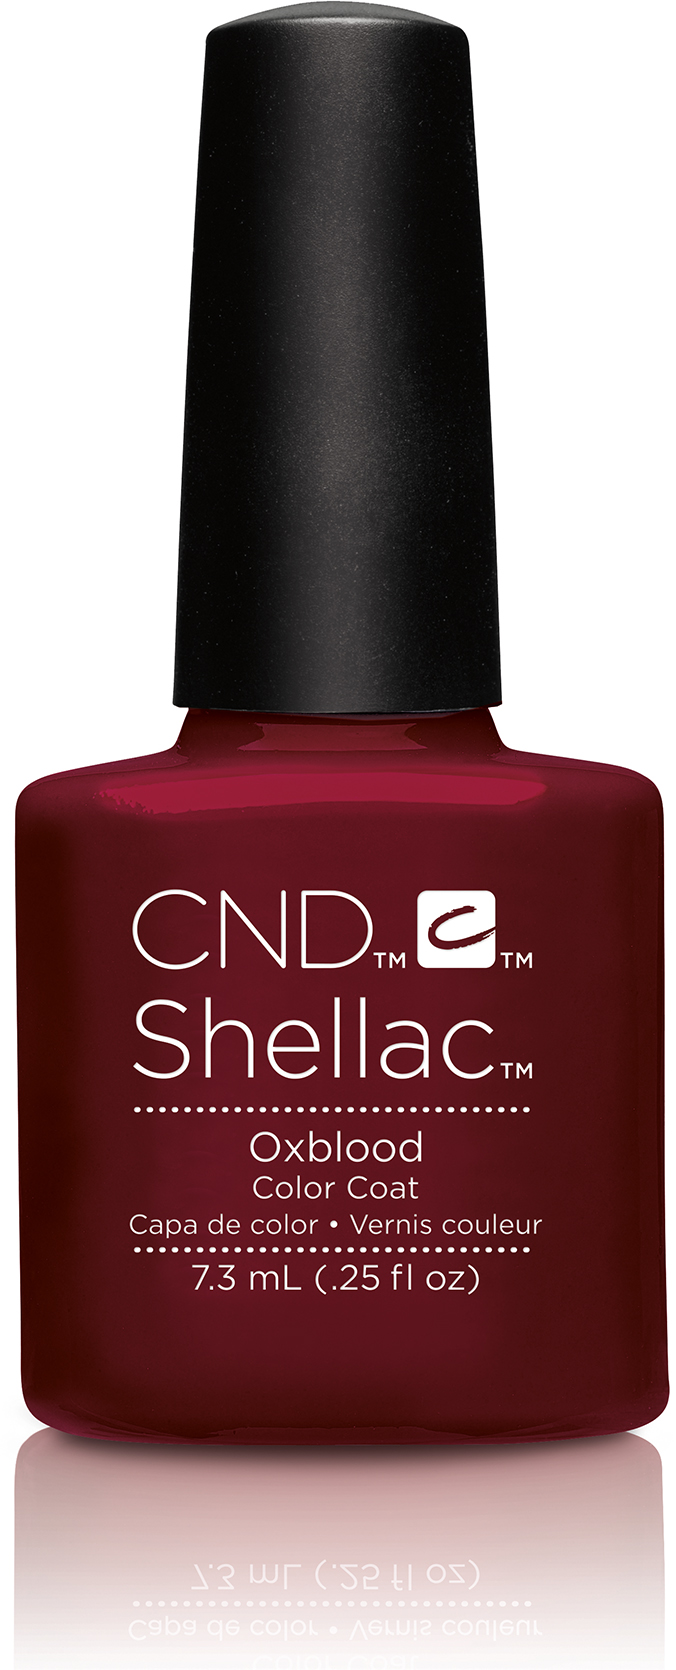 CND Shellac Craft Culture Collection Oxblood